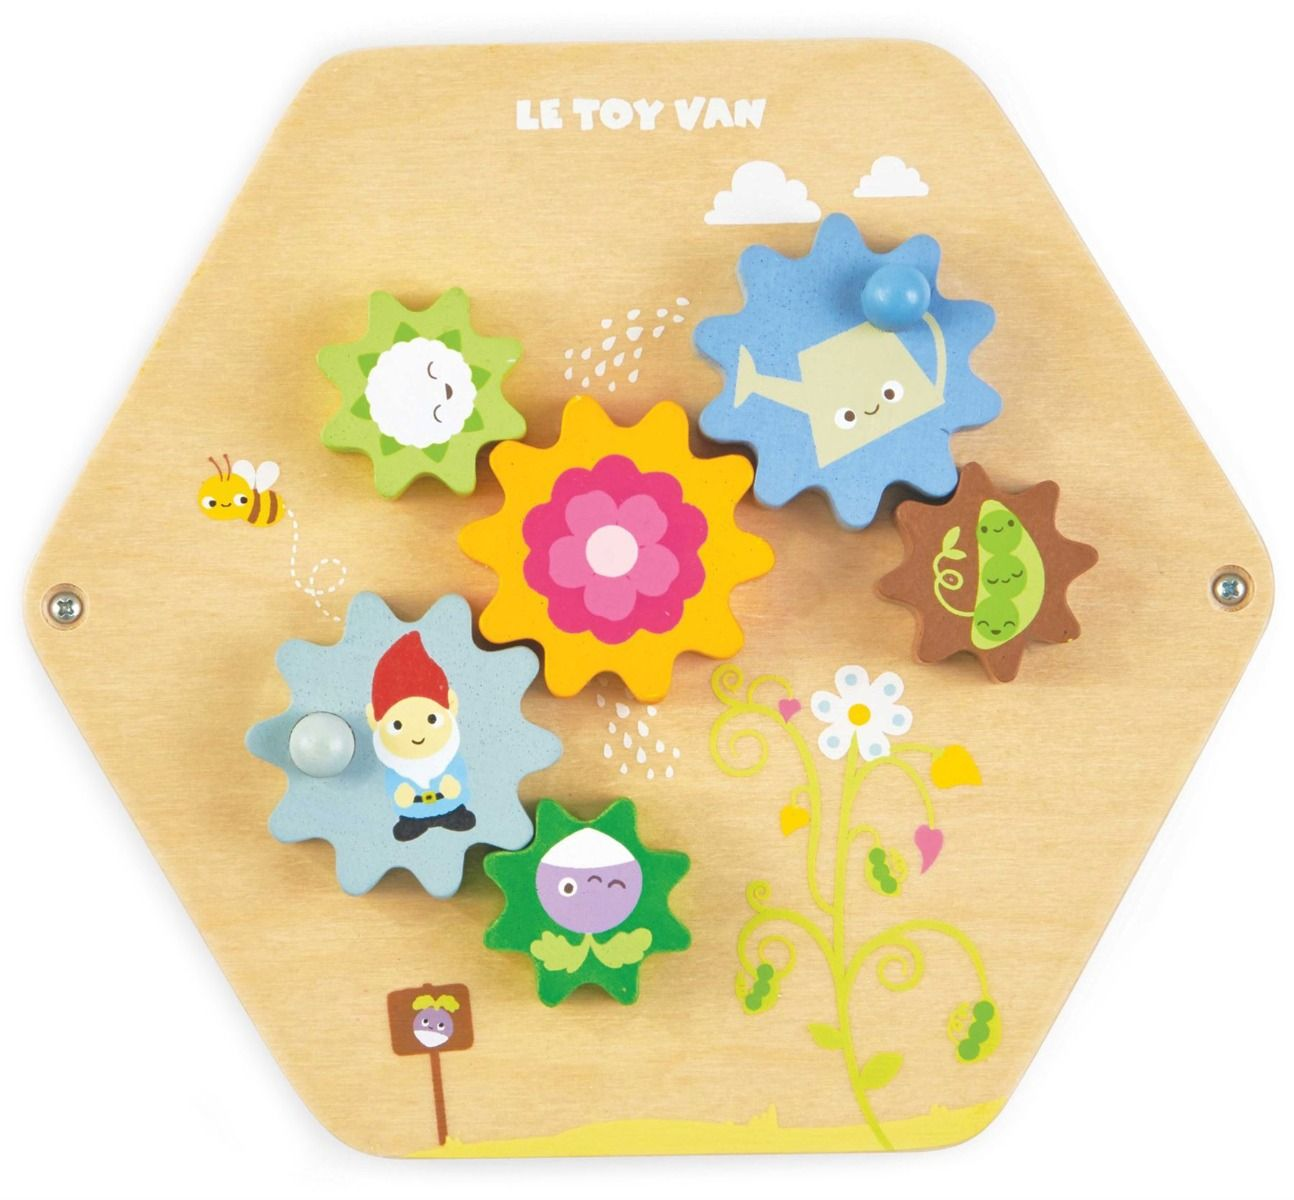 Le Toy Van wooden toddler activity disc - Gears